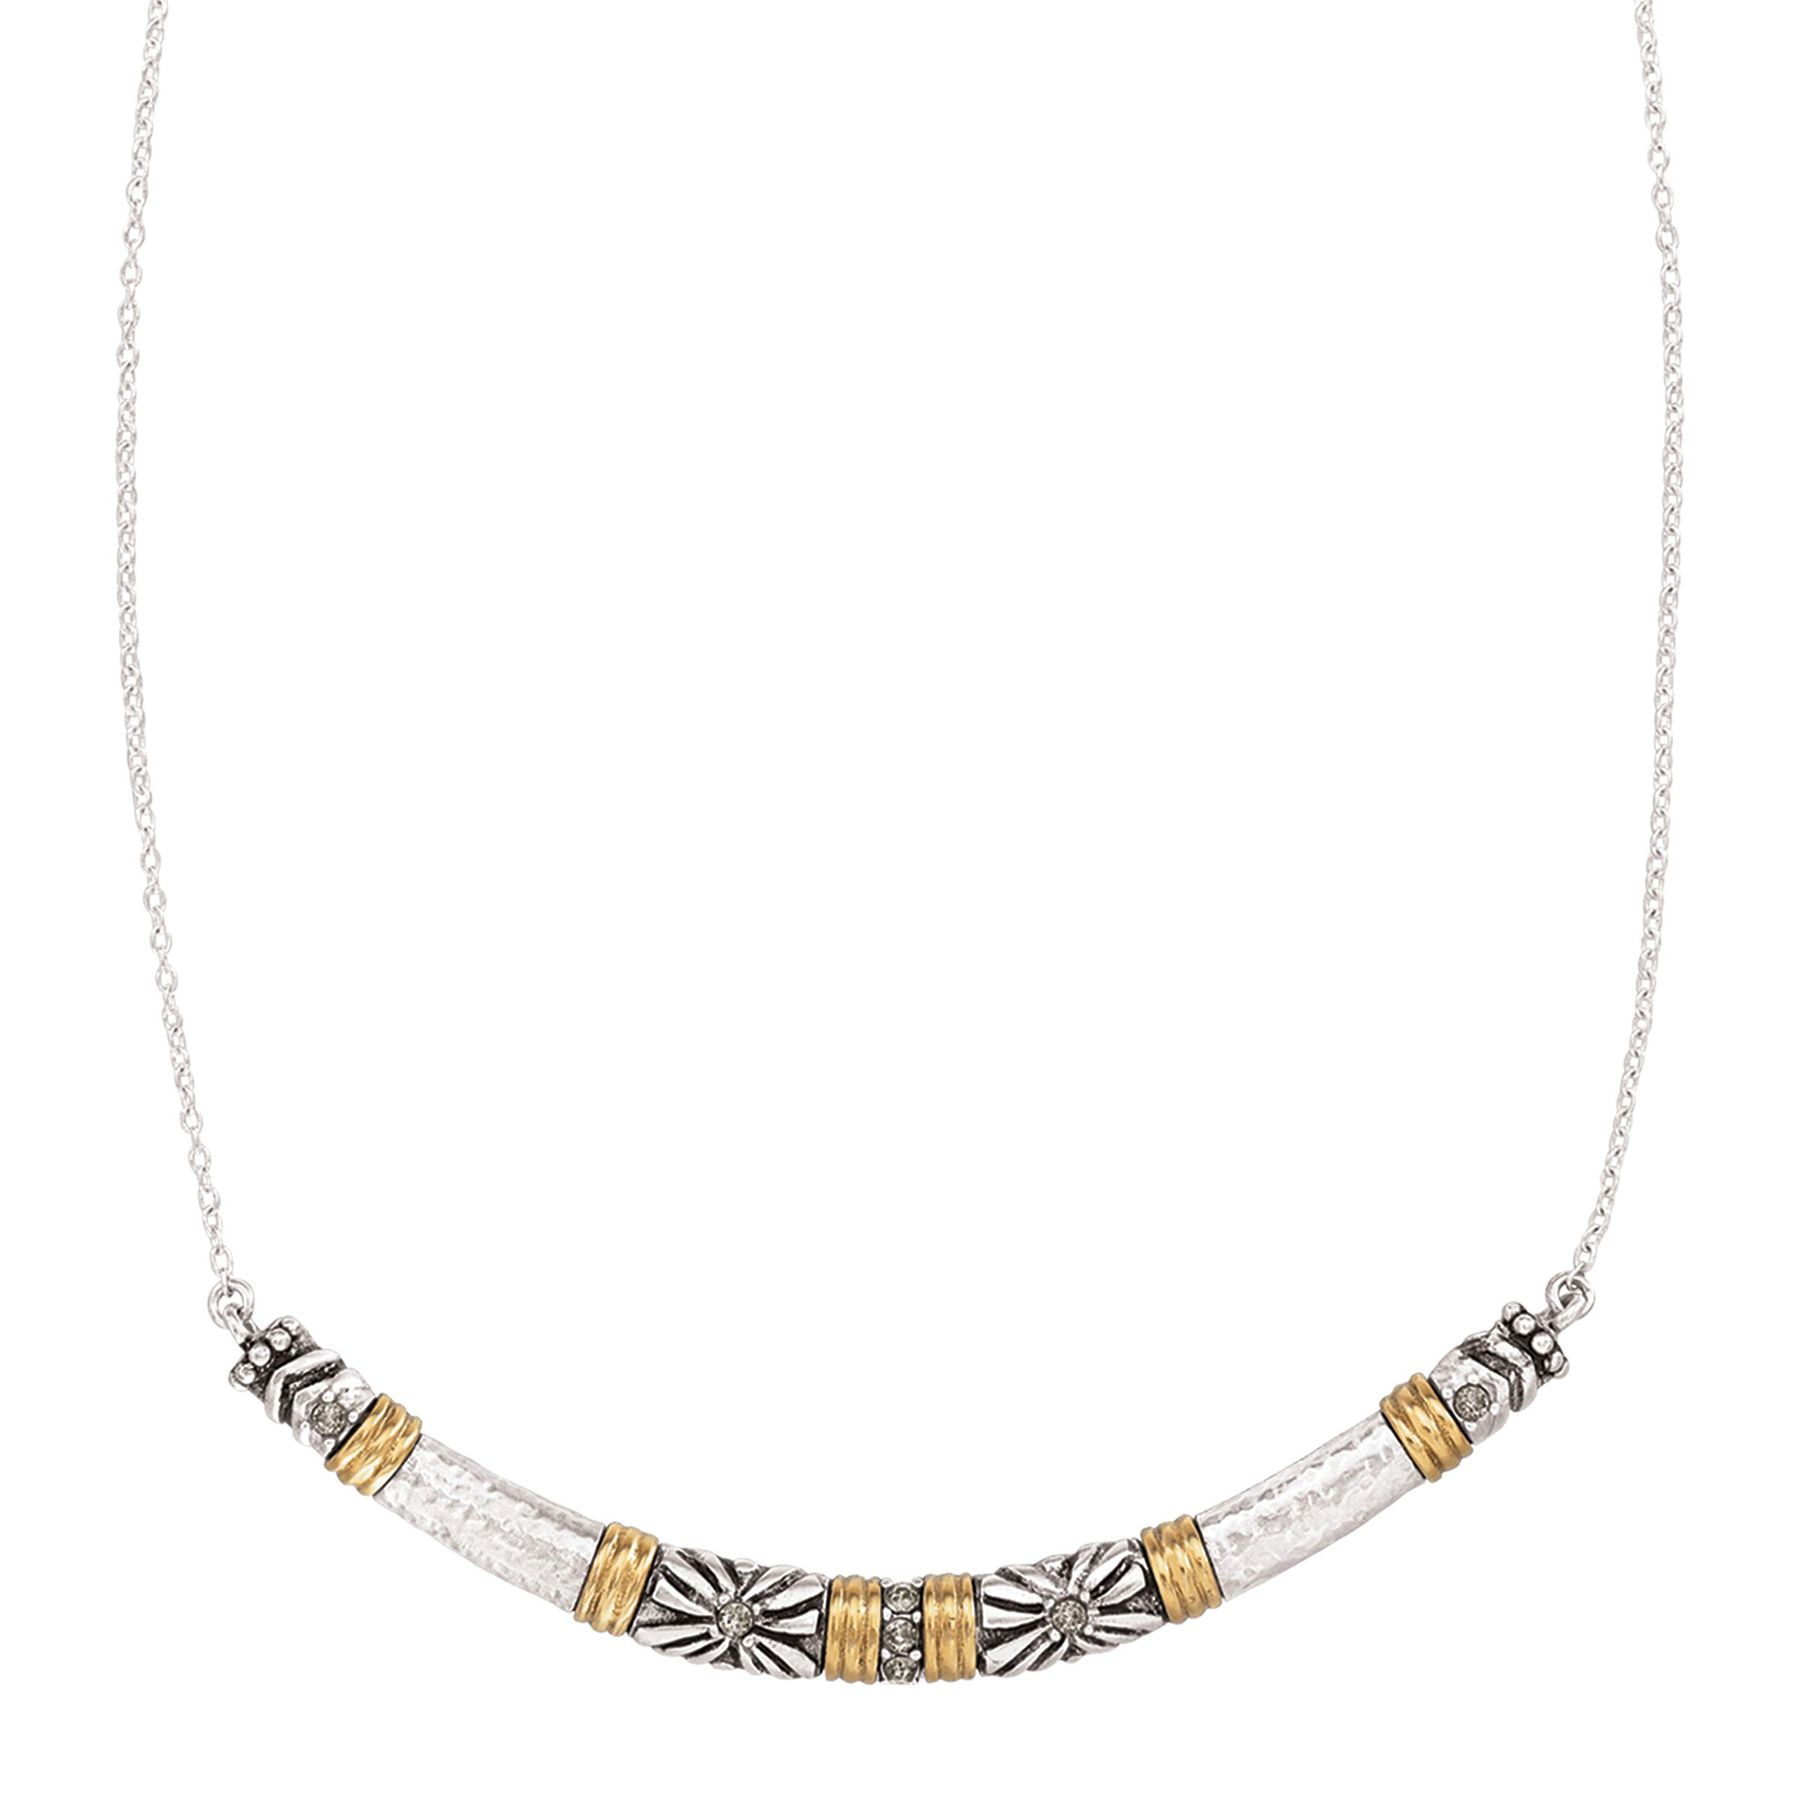 Silpada Canyon Dreams Curved Bar Necklace With Swarovski Crystals In Sterling Silver Br